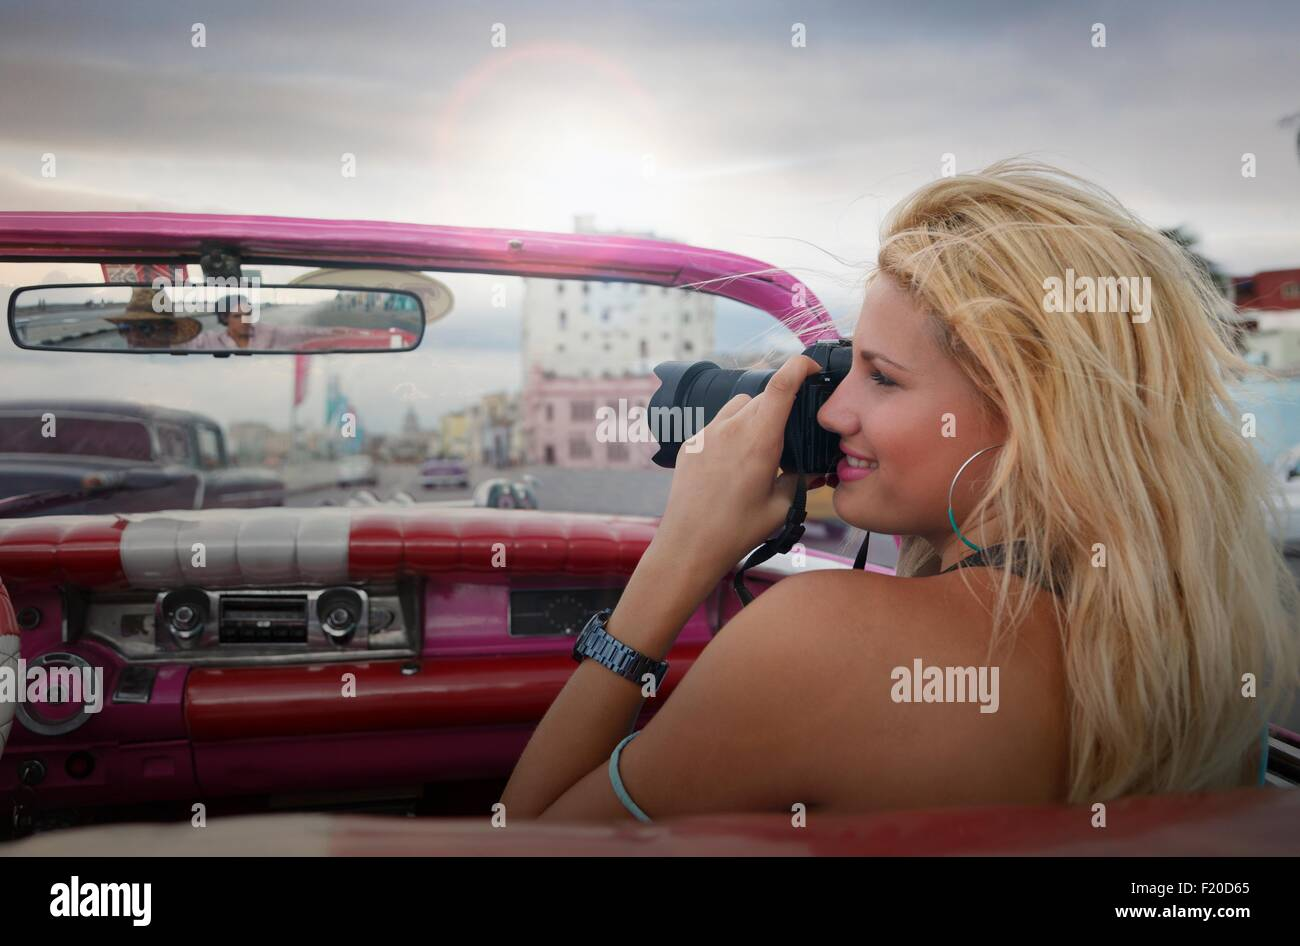 Young woman taking pictures from a vintage car on the Havana' Malecon, Cuba - Stock Image